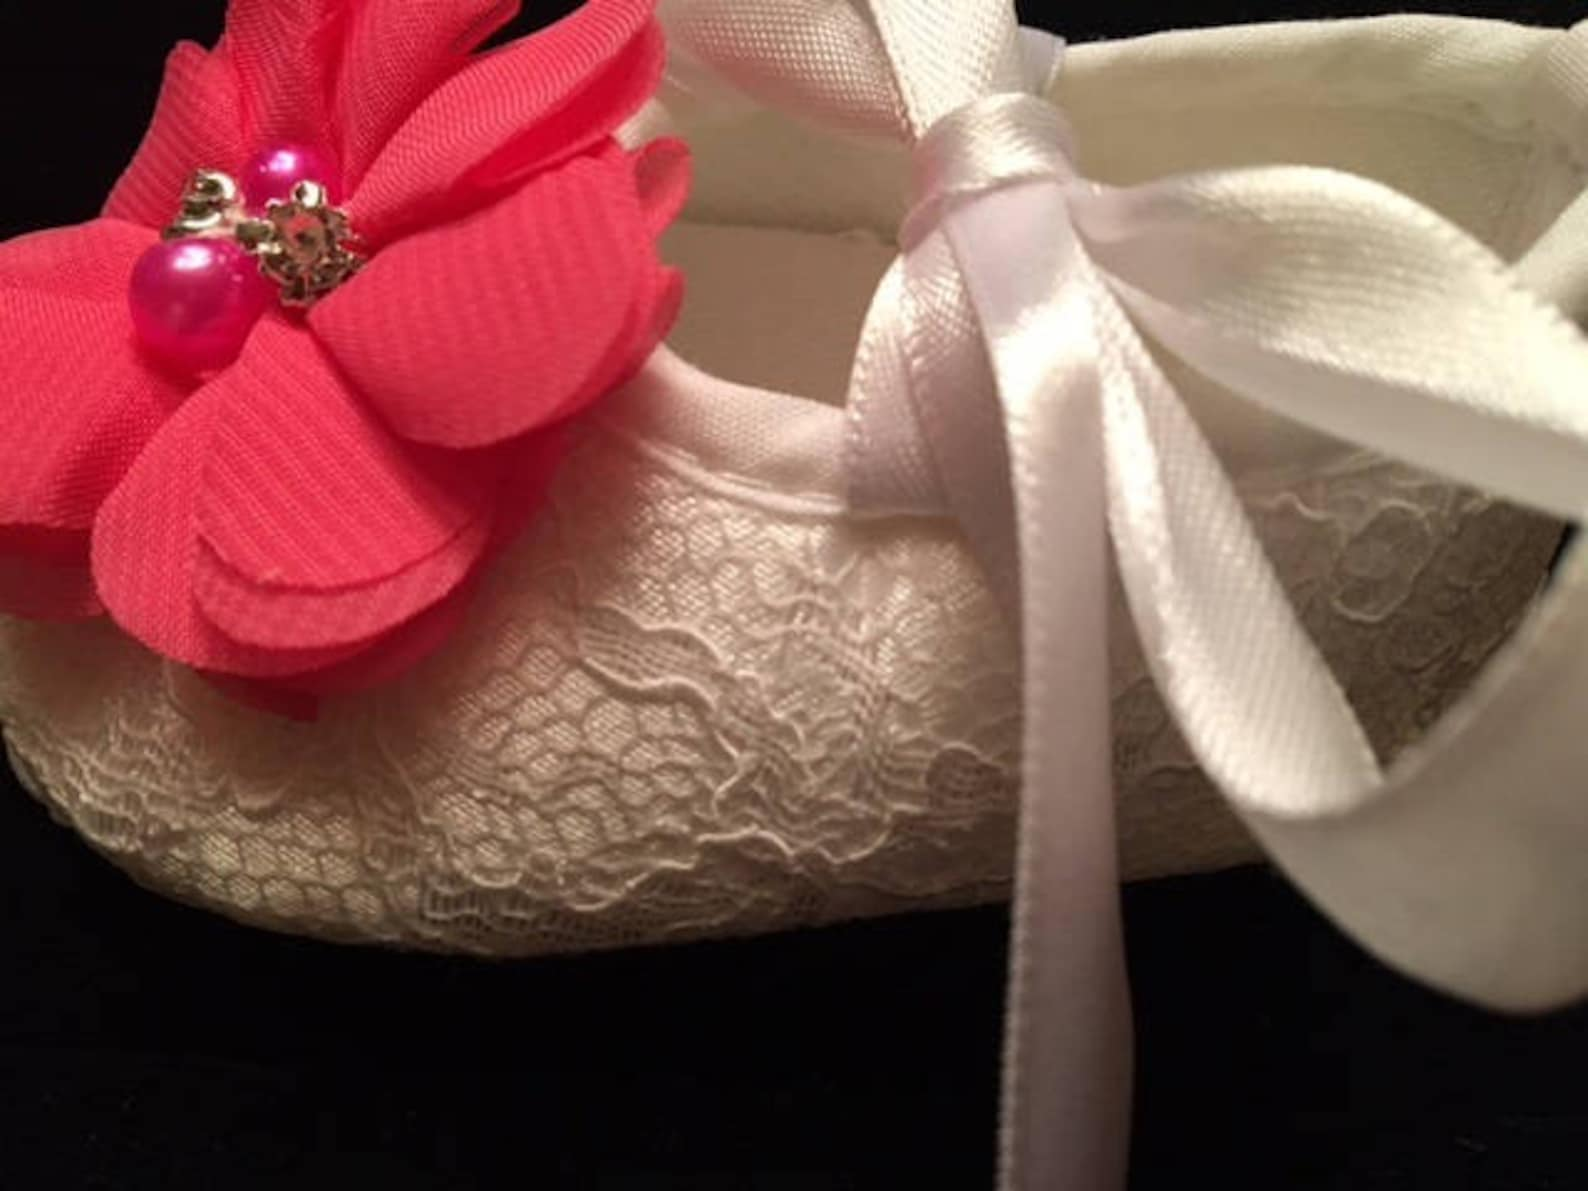 white lace baby shoes with hot pink flower - baby flower girl baby shoes - baby dress christmas shoes - baby ballet slippers